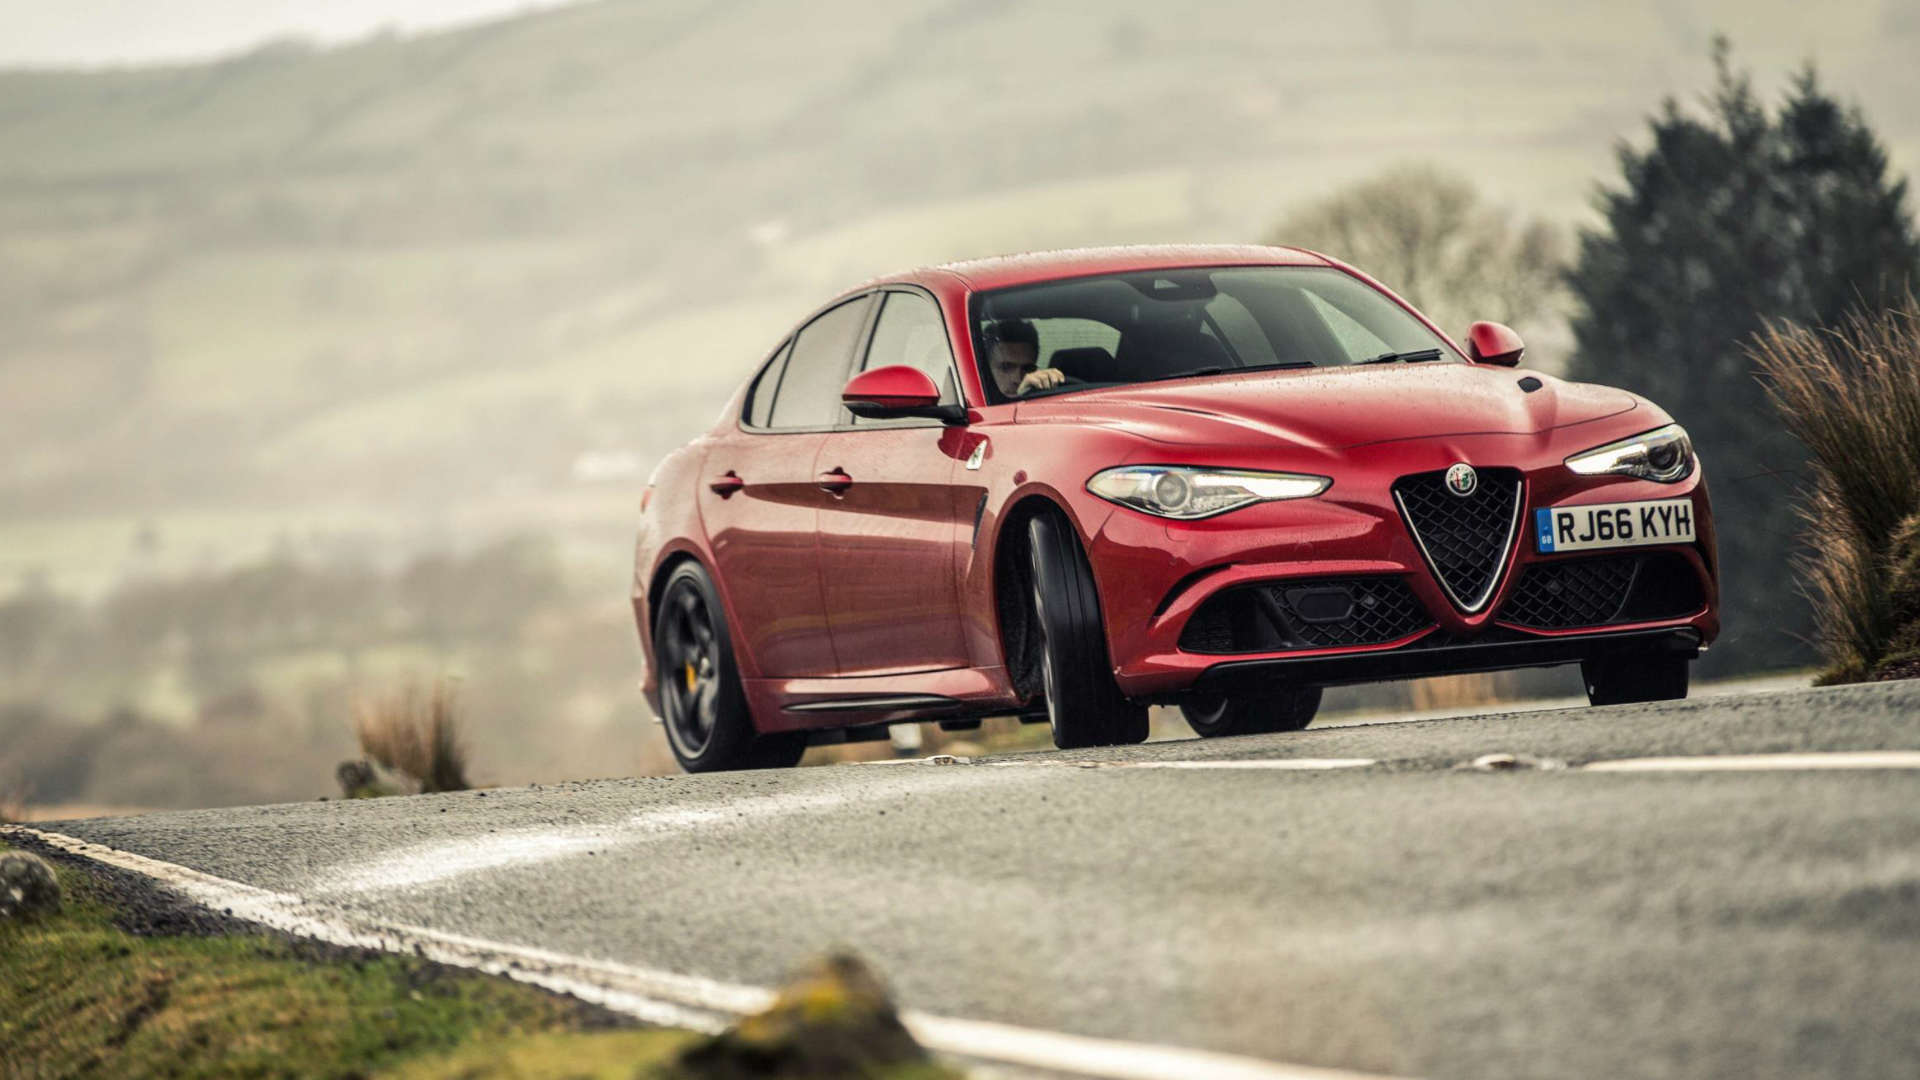 Time to buy a used Giulia Quadrifoglio